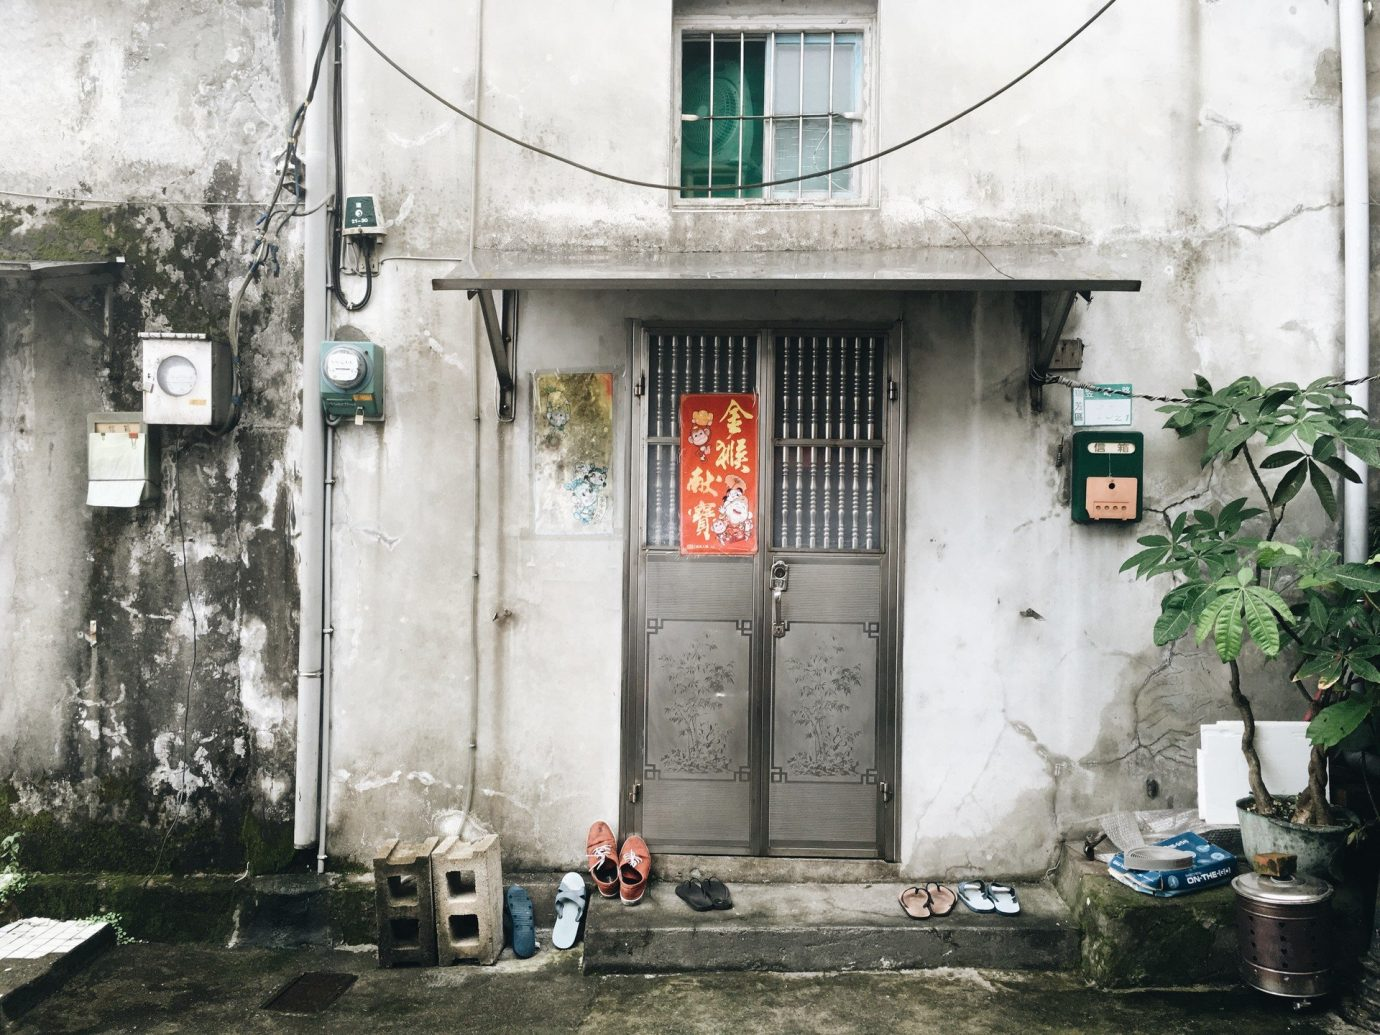 Jetsetter Guides Trip Ideas building outdoor road urban area house neighbourhood street Town alley facade stone dirty scooter